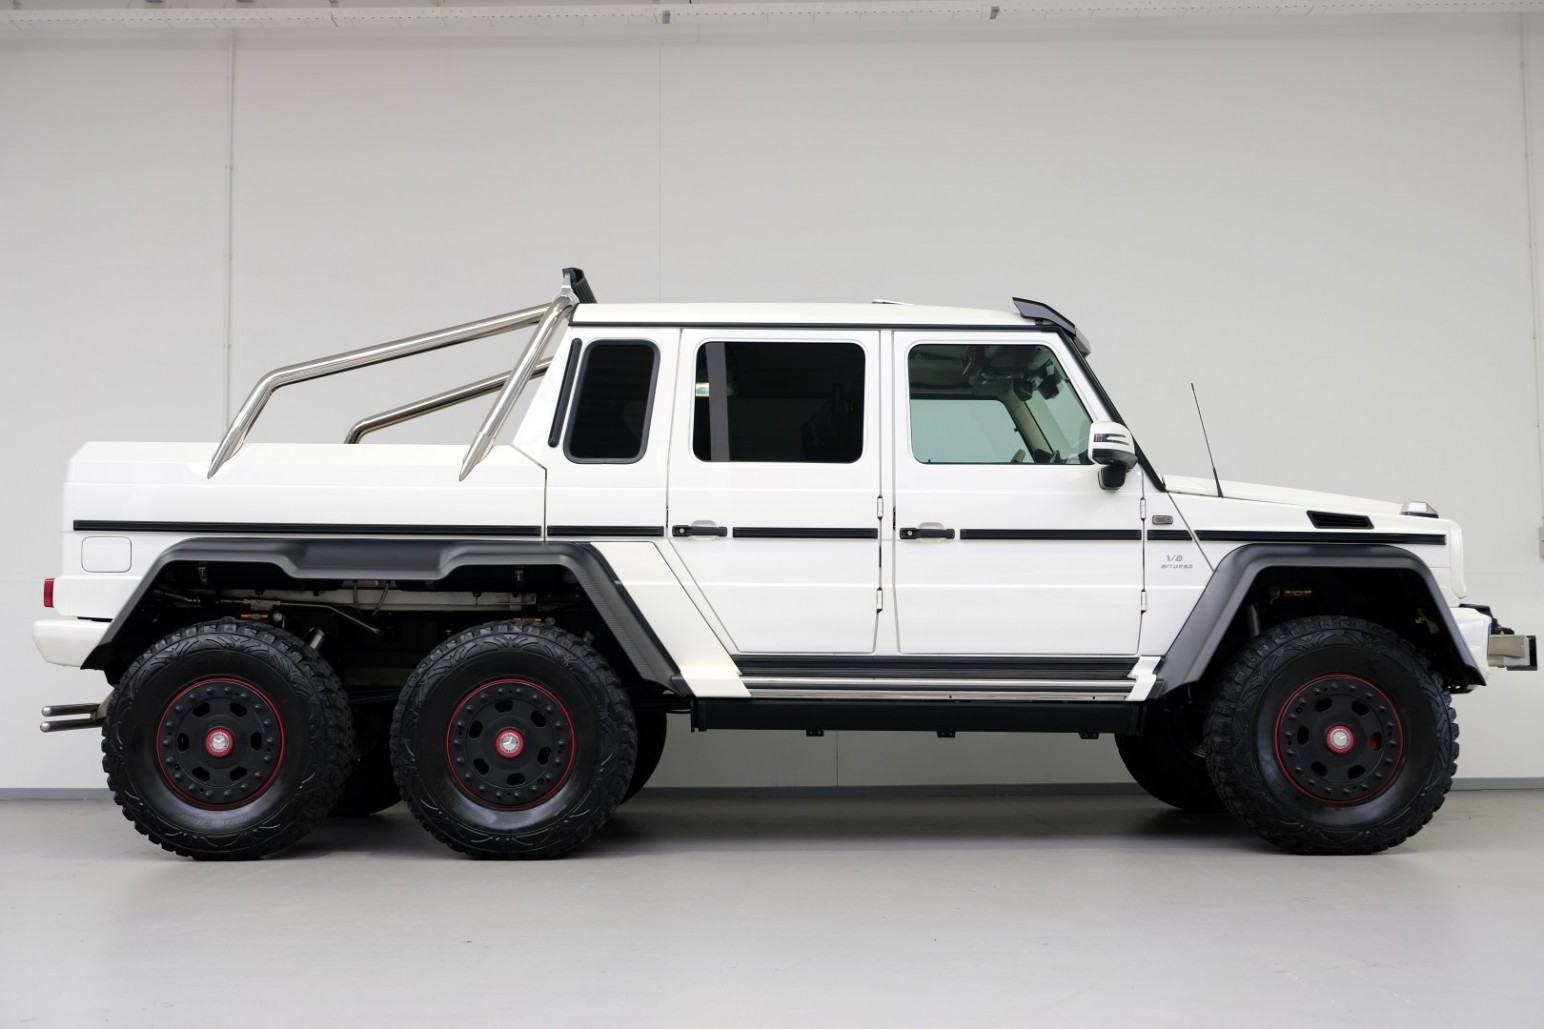 Auto Sitzheizung Real Mercedes Benz G 63 Amg 6x6 W463 Auto Leitner